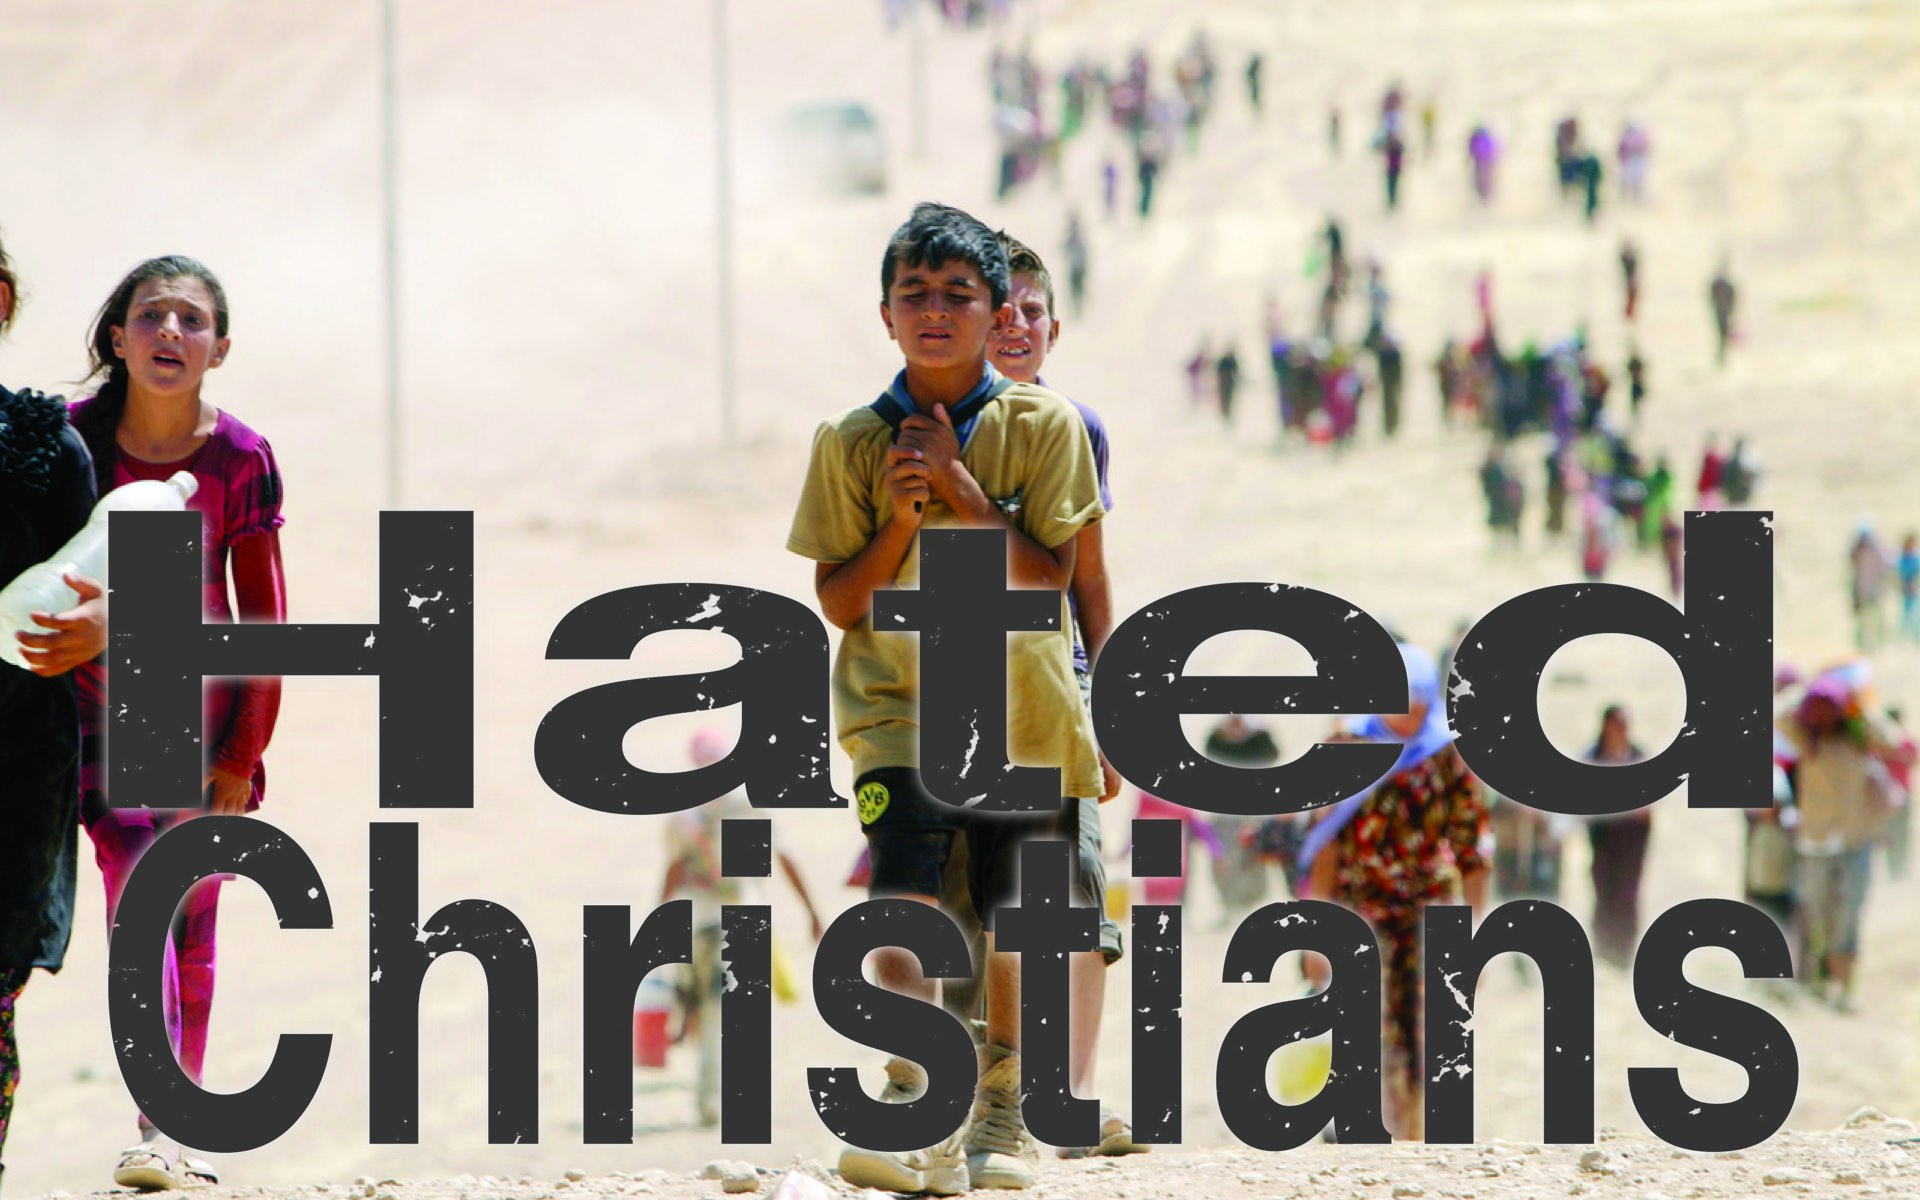 Hated Christians